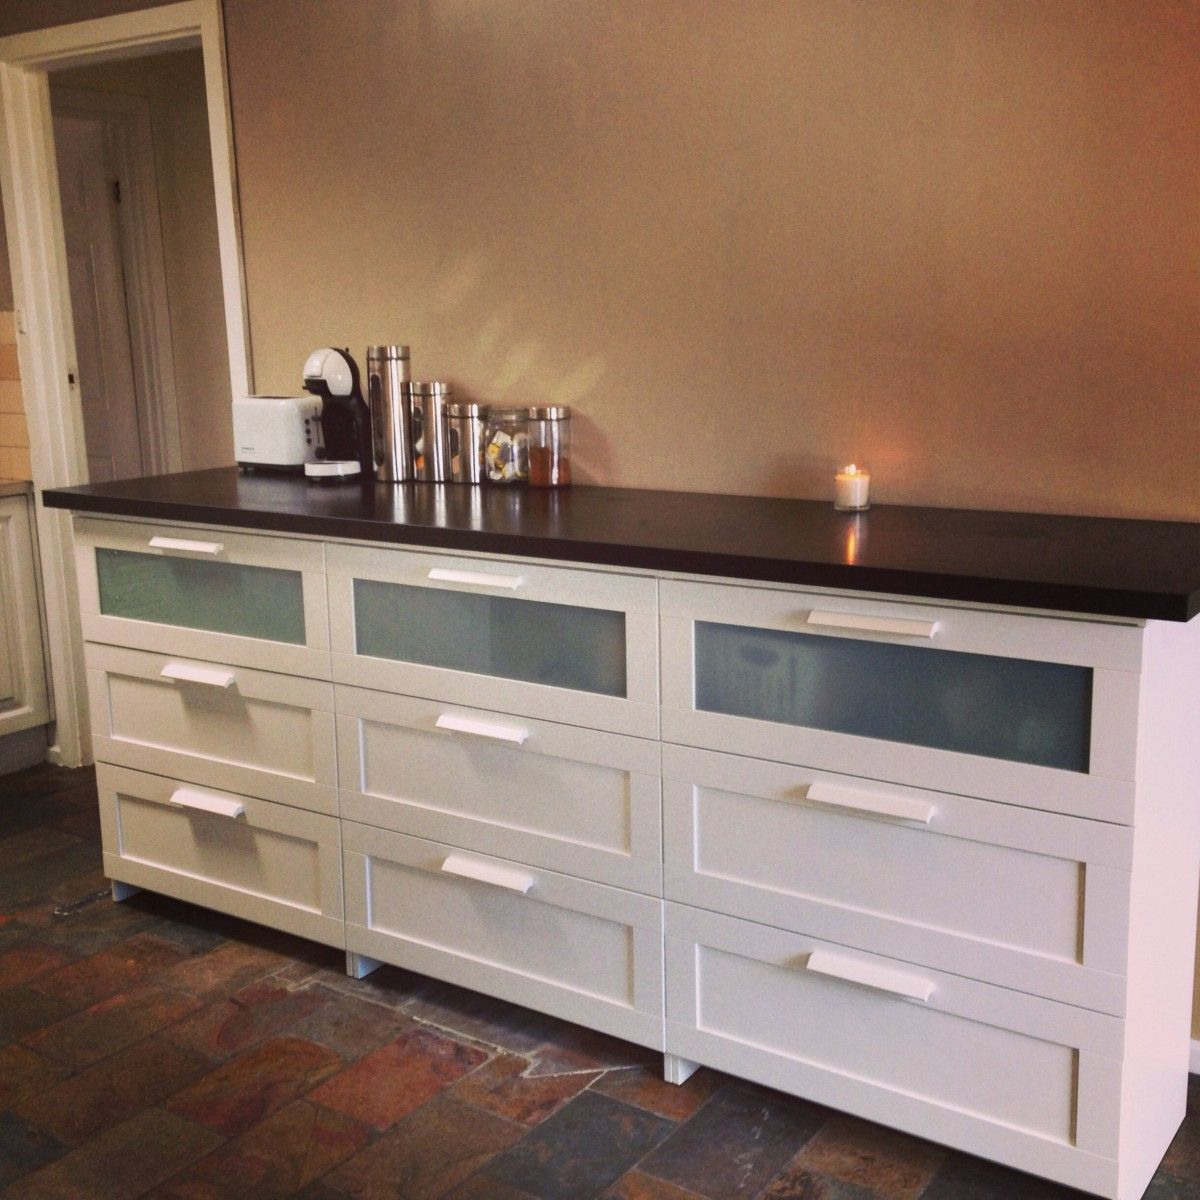 Ikea Chest Hack 3 Brimnes Cabinets With Pragel Benchtop Lego Lamp Love Lines Of